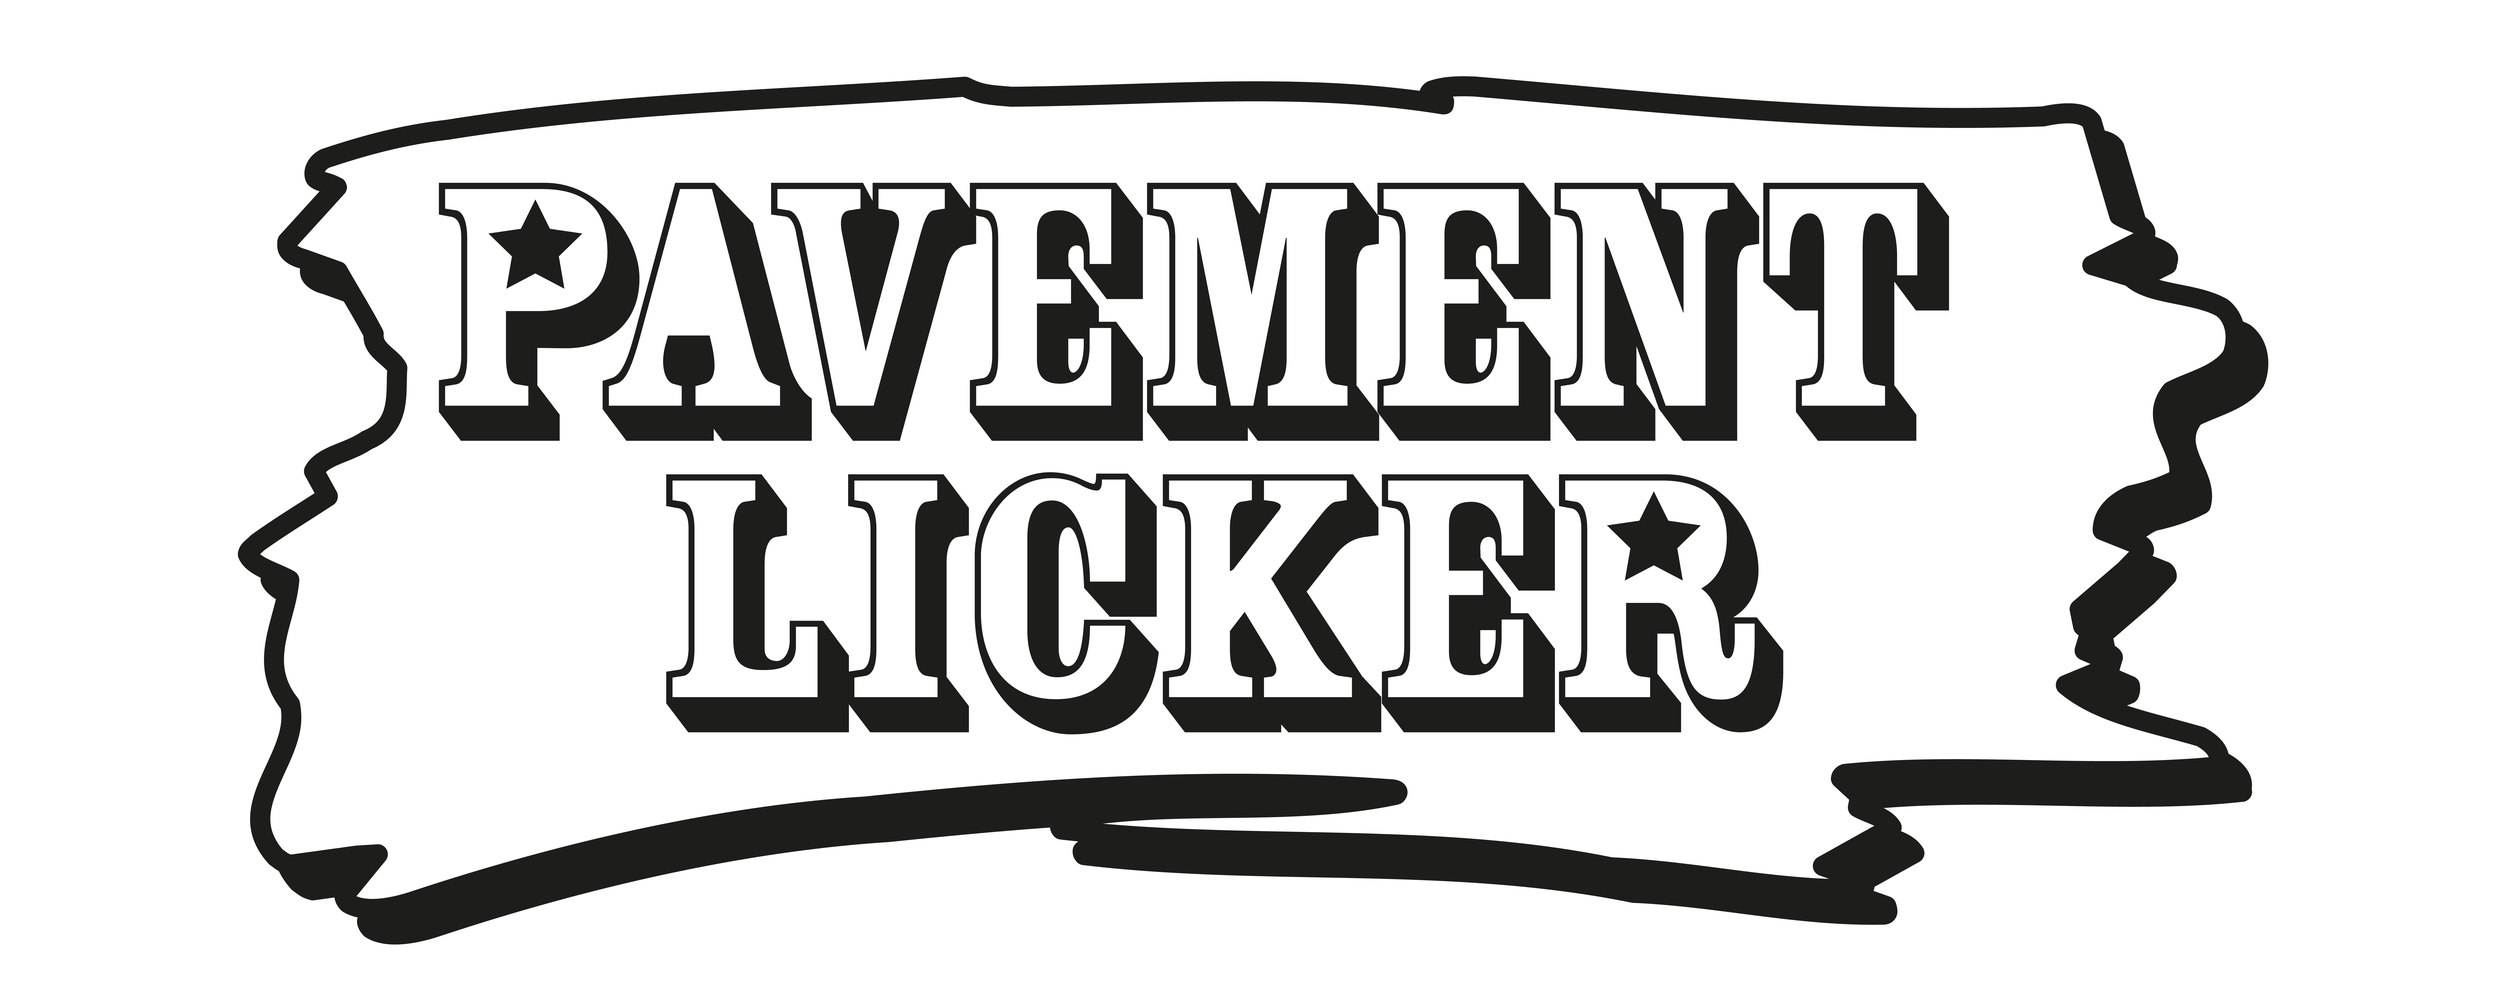 Pavement-Licker-issue-04.png